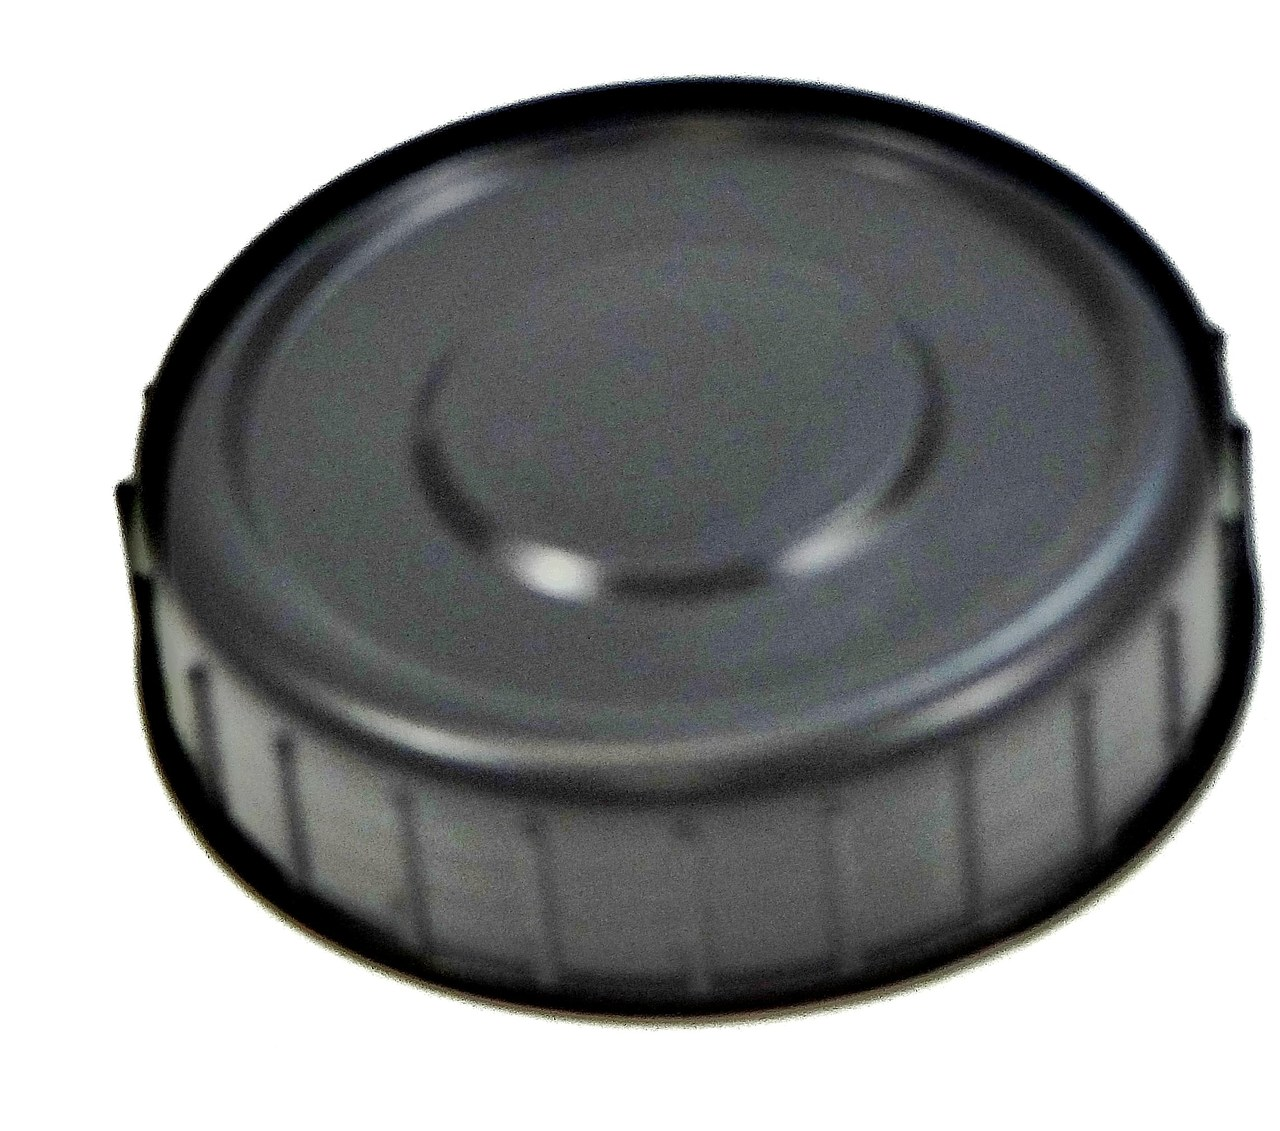 Cool Caddie Fill Cap Black Replacement Part-Small